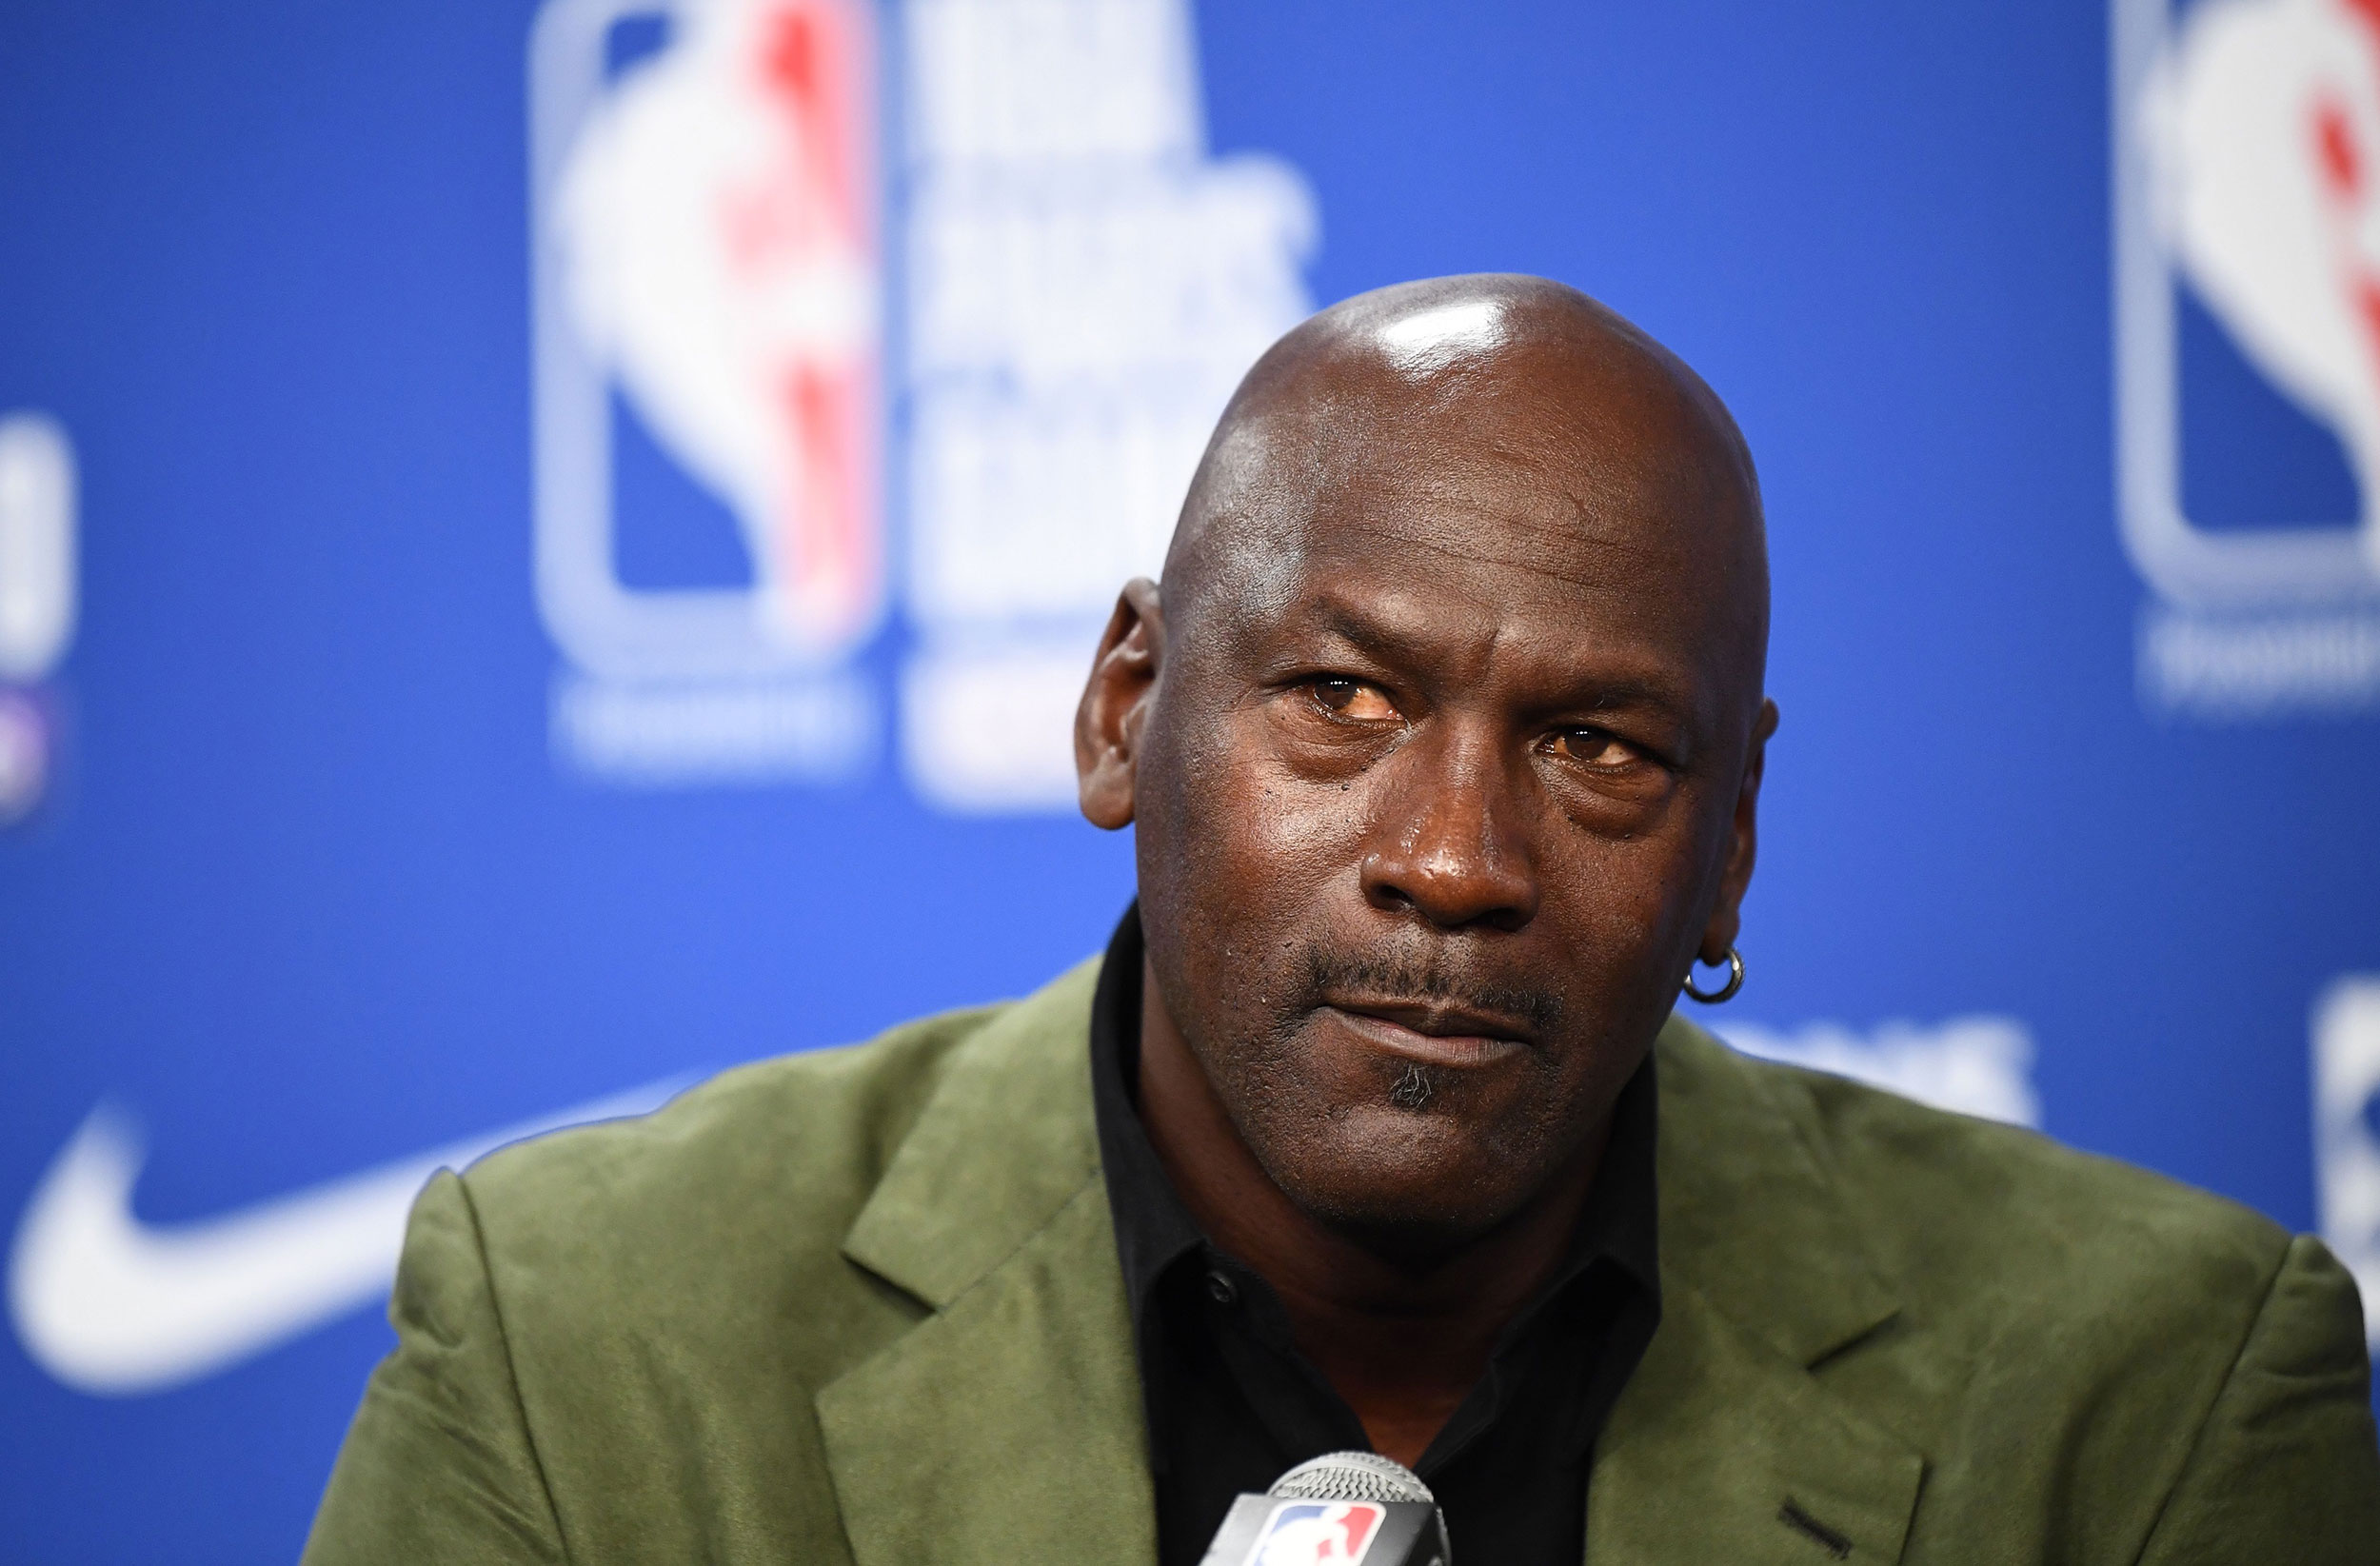 Michael Jordan speaks at a press conference before an NBA game on January 24.